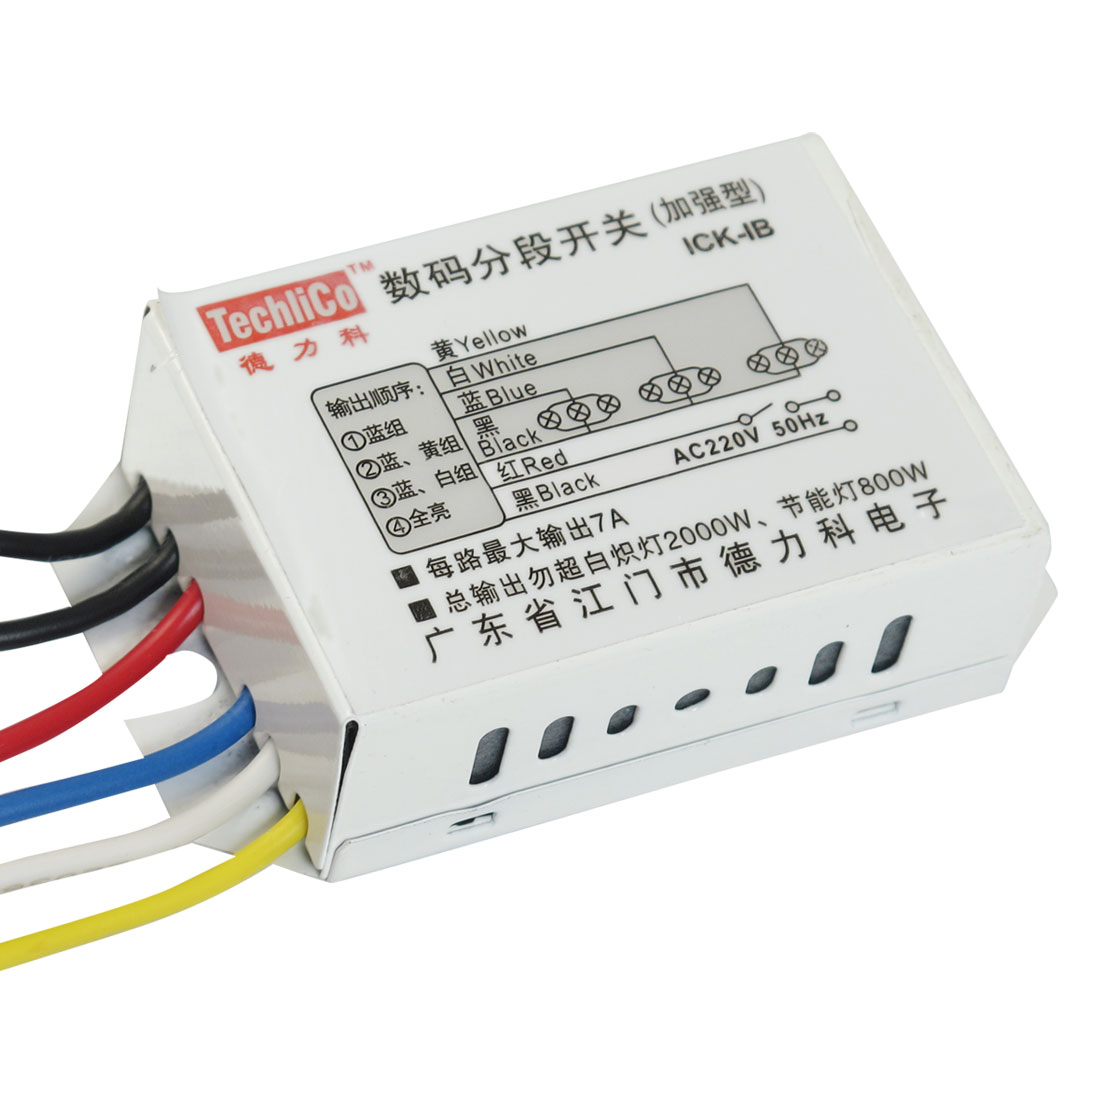 AC 220V 50Hz 4 Way 3 Section Lamp Digital Control Change Frequency Switch